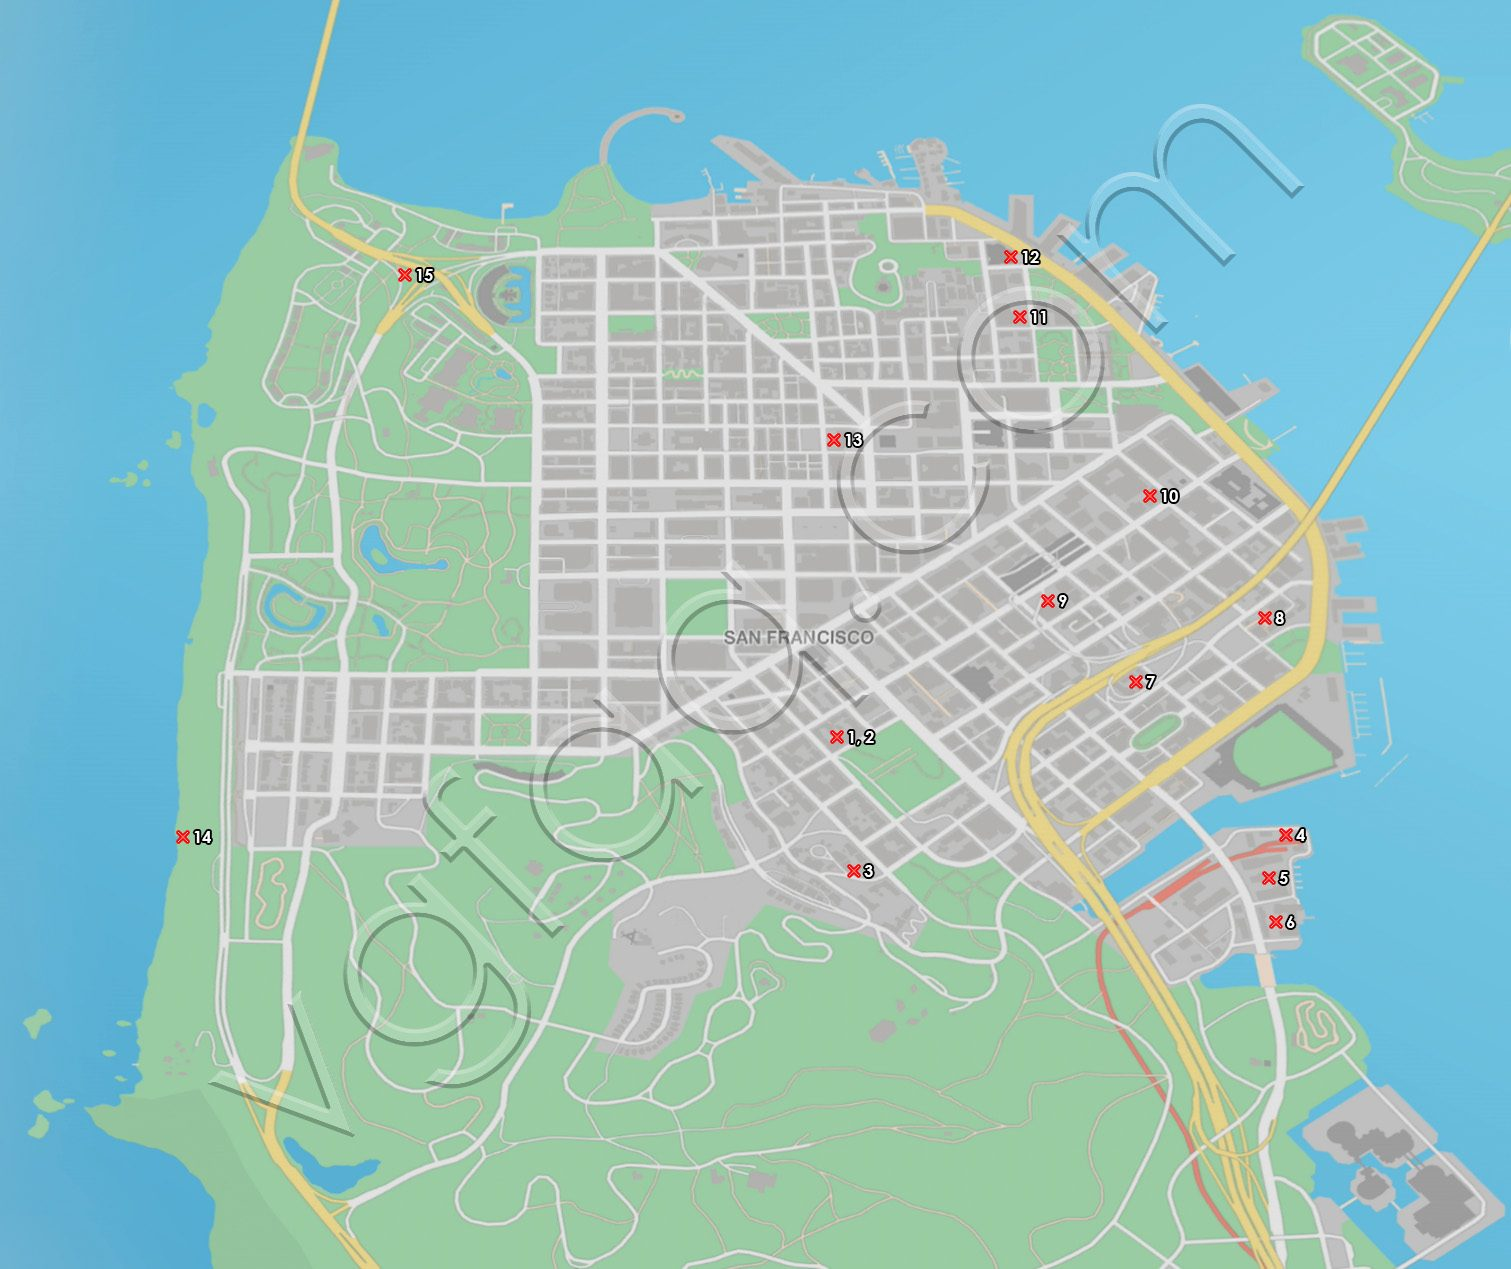 Watch Dogs 2 San Francisco Paint Jobs Locations Map